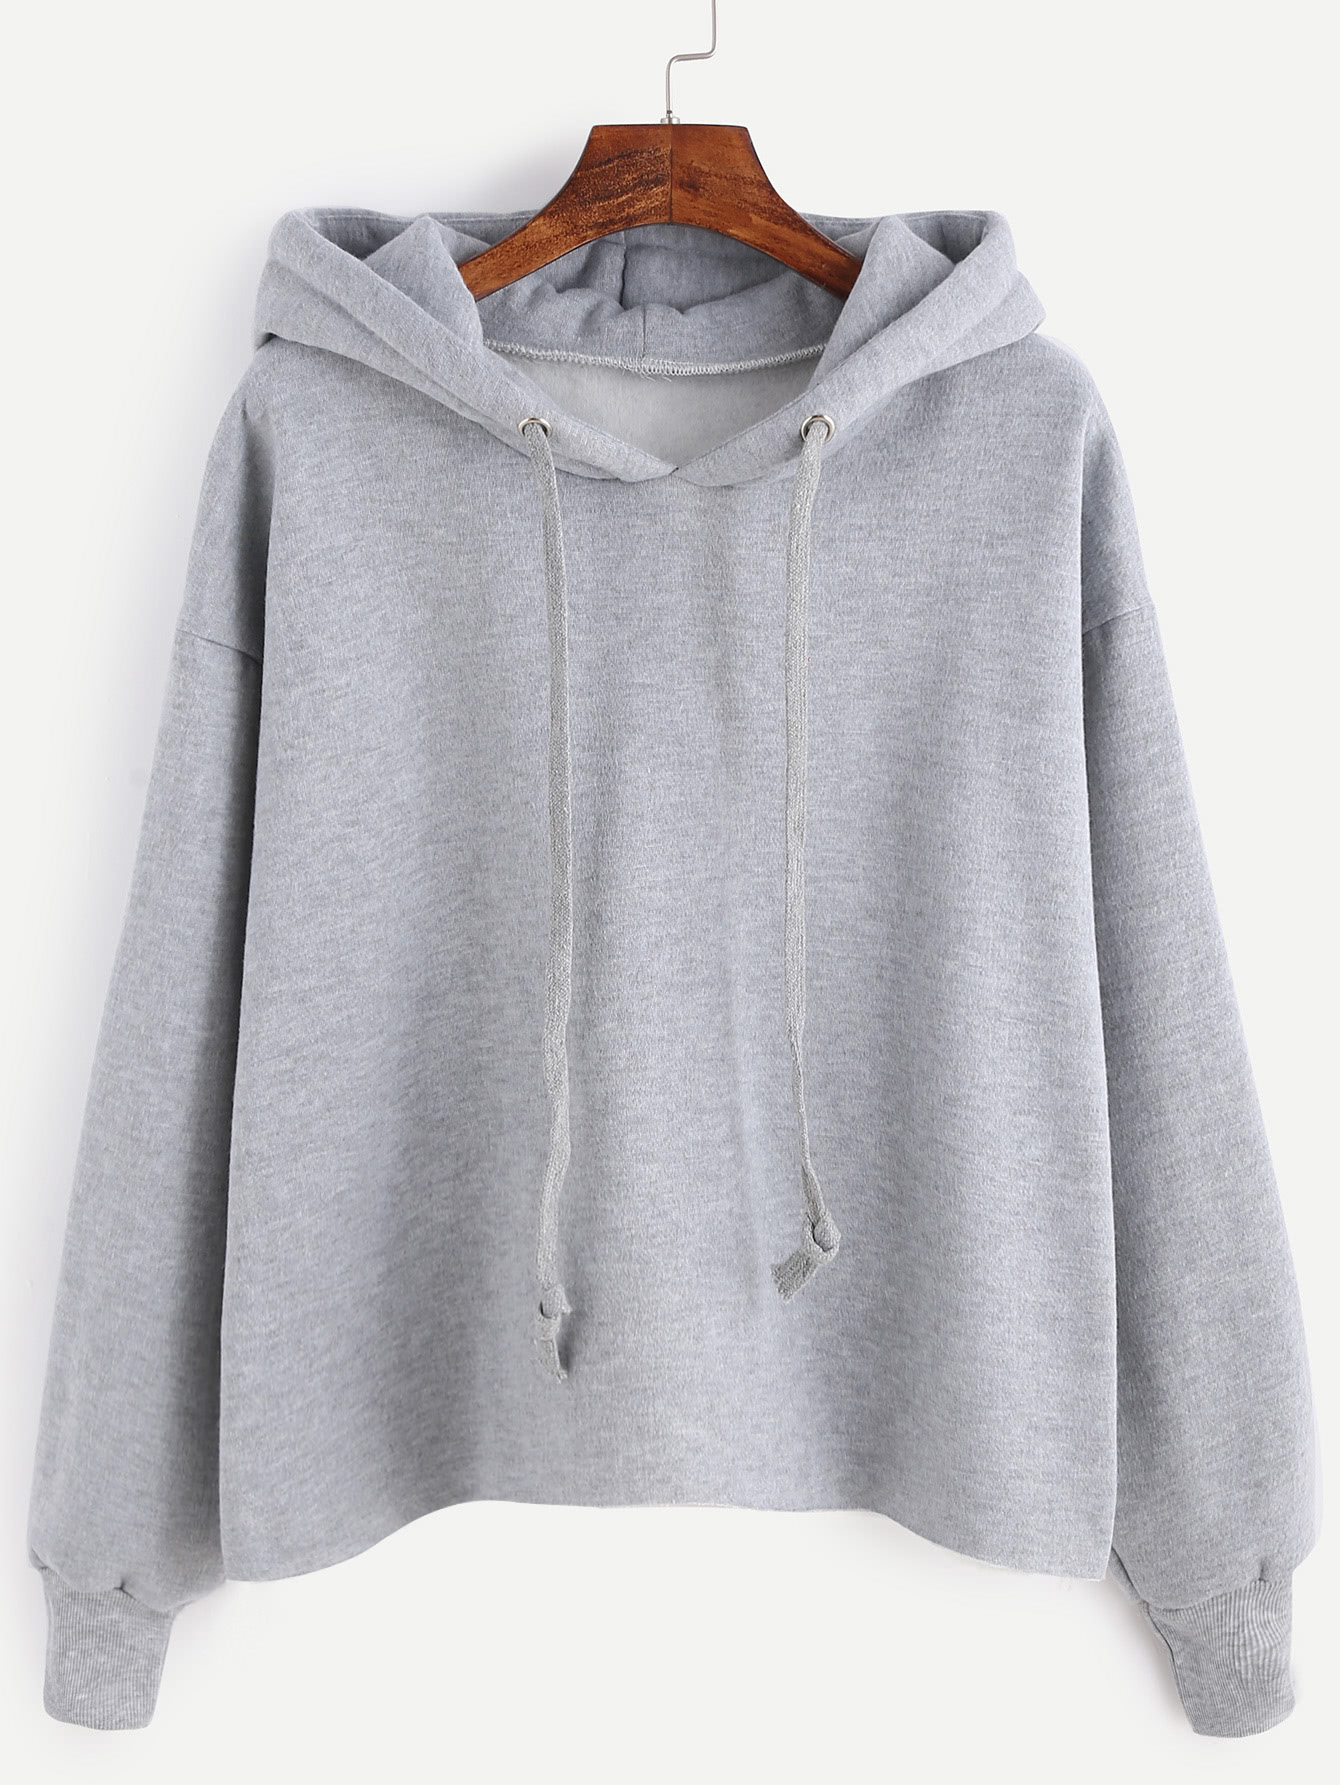 Drawstring Hooded Sweatshirt sweatshirt161021105